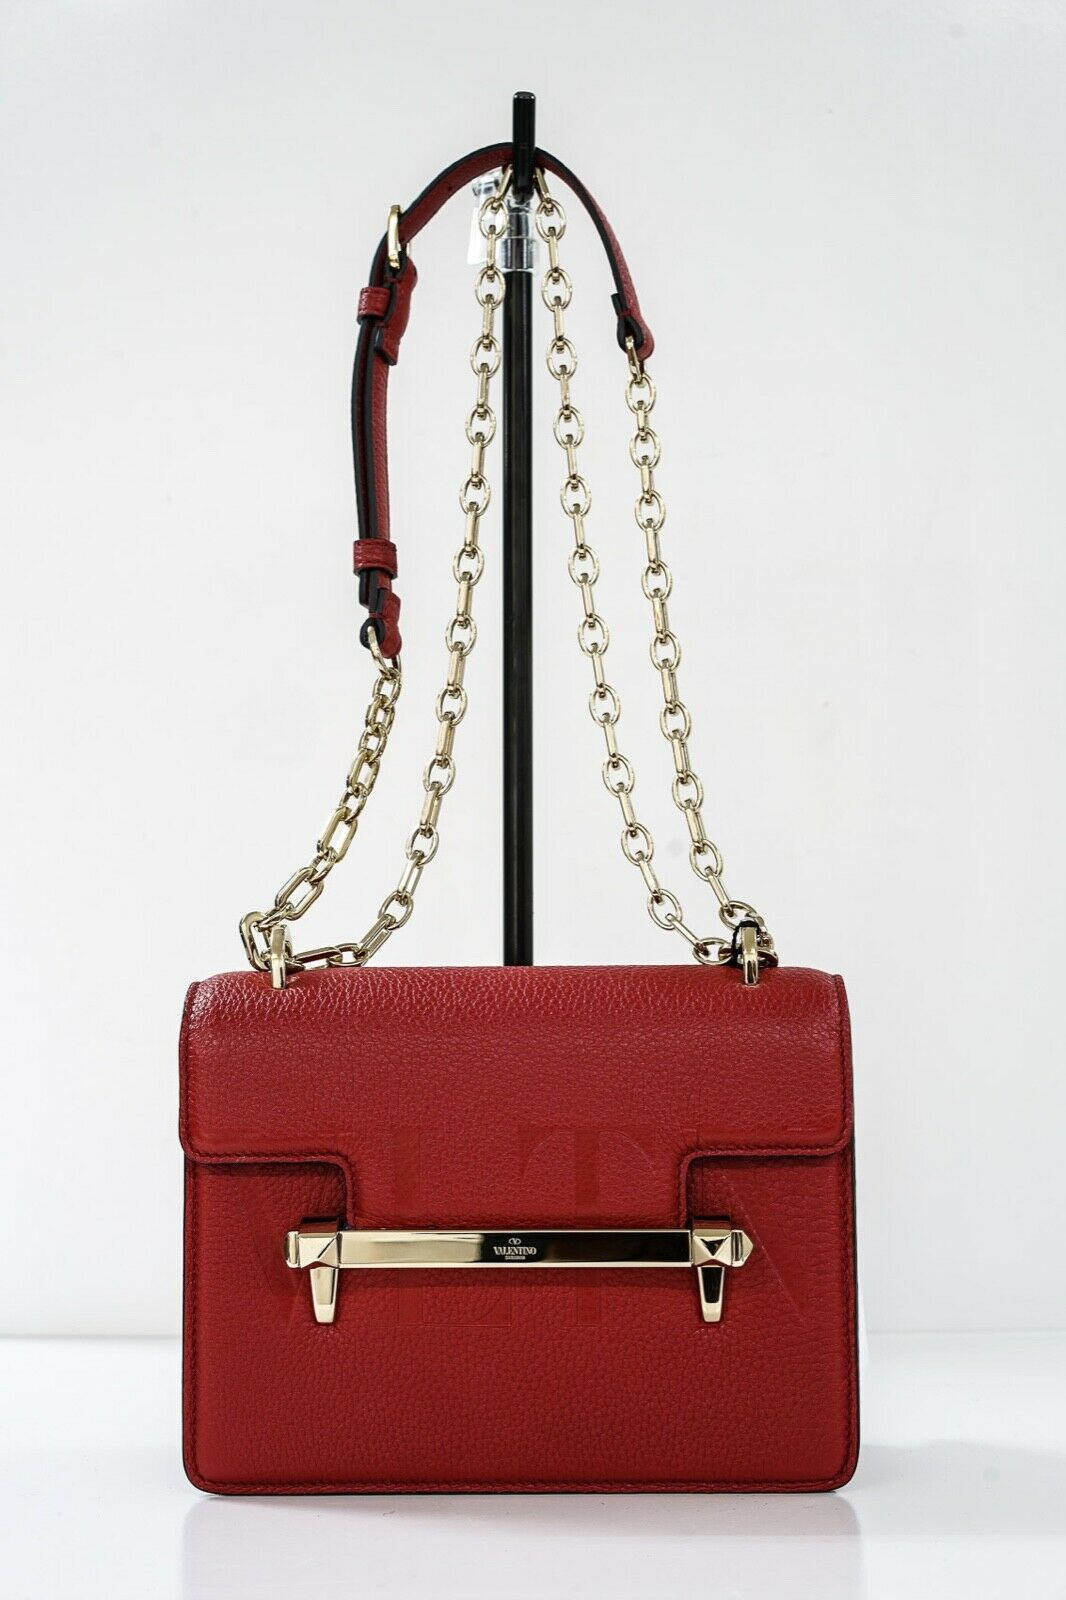 Valentino Red Leather Uptown Bag 4B0C93